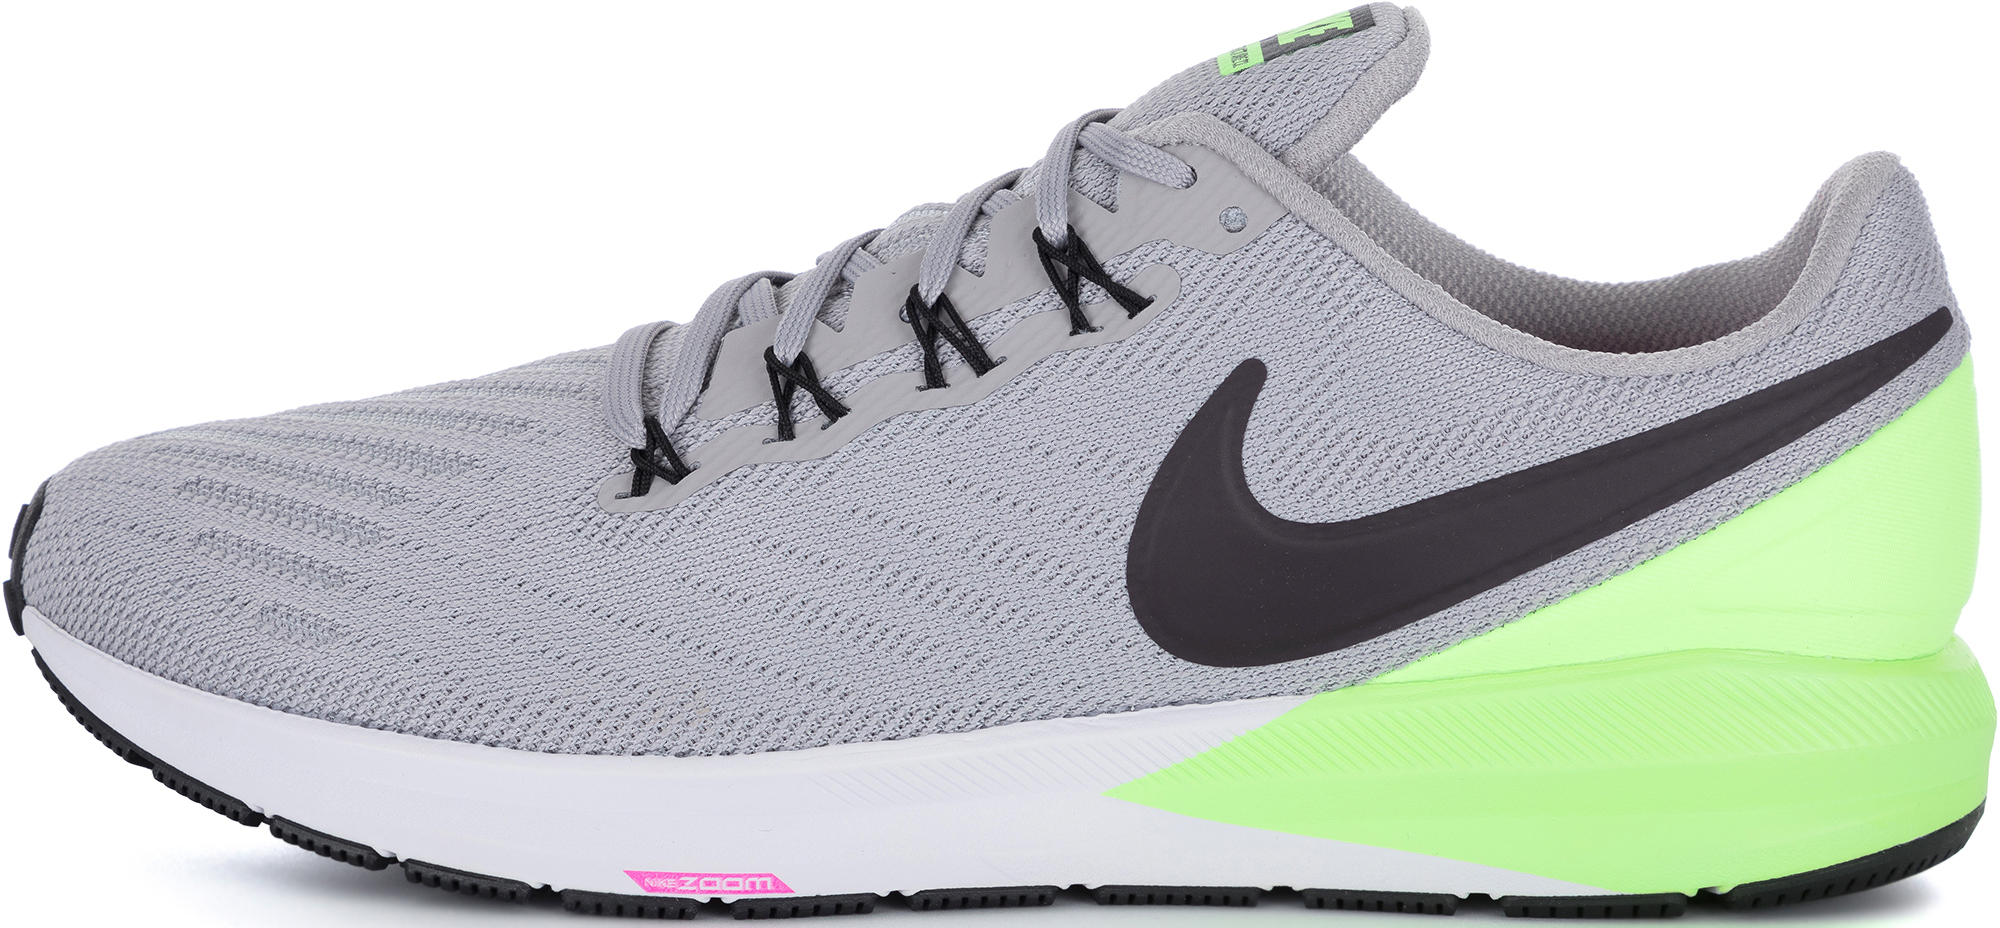 Nike Кроссовки мужские Nike Air Zoom Structure 22, размер 45 nike air zoom structure 20 w 849577 001